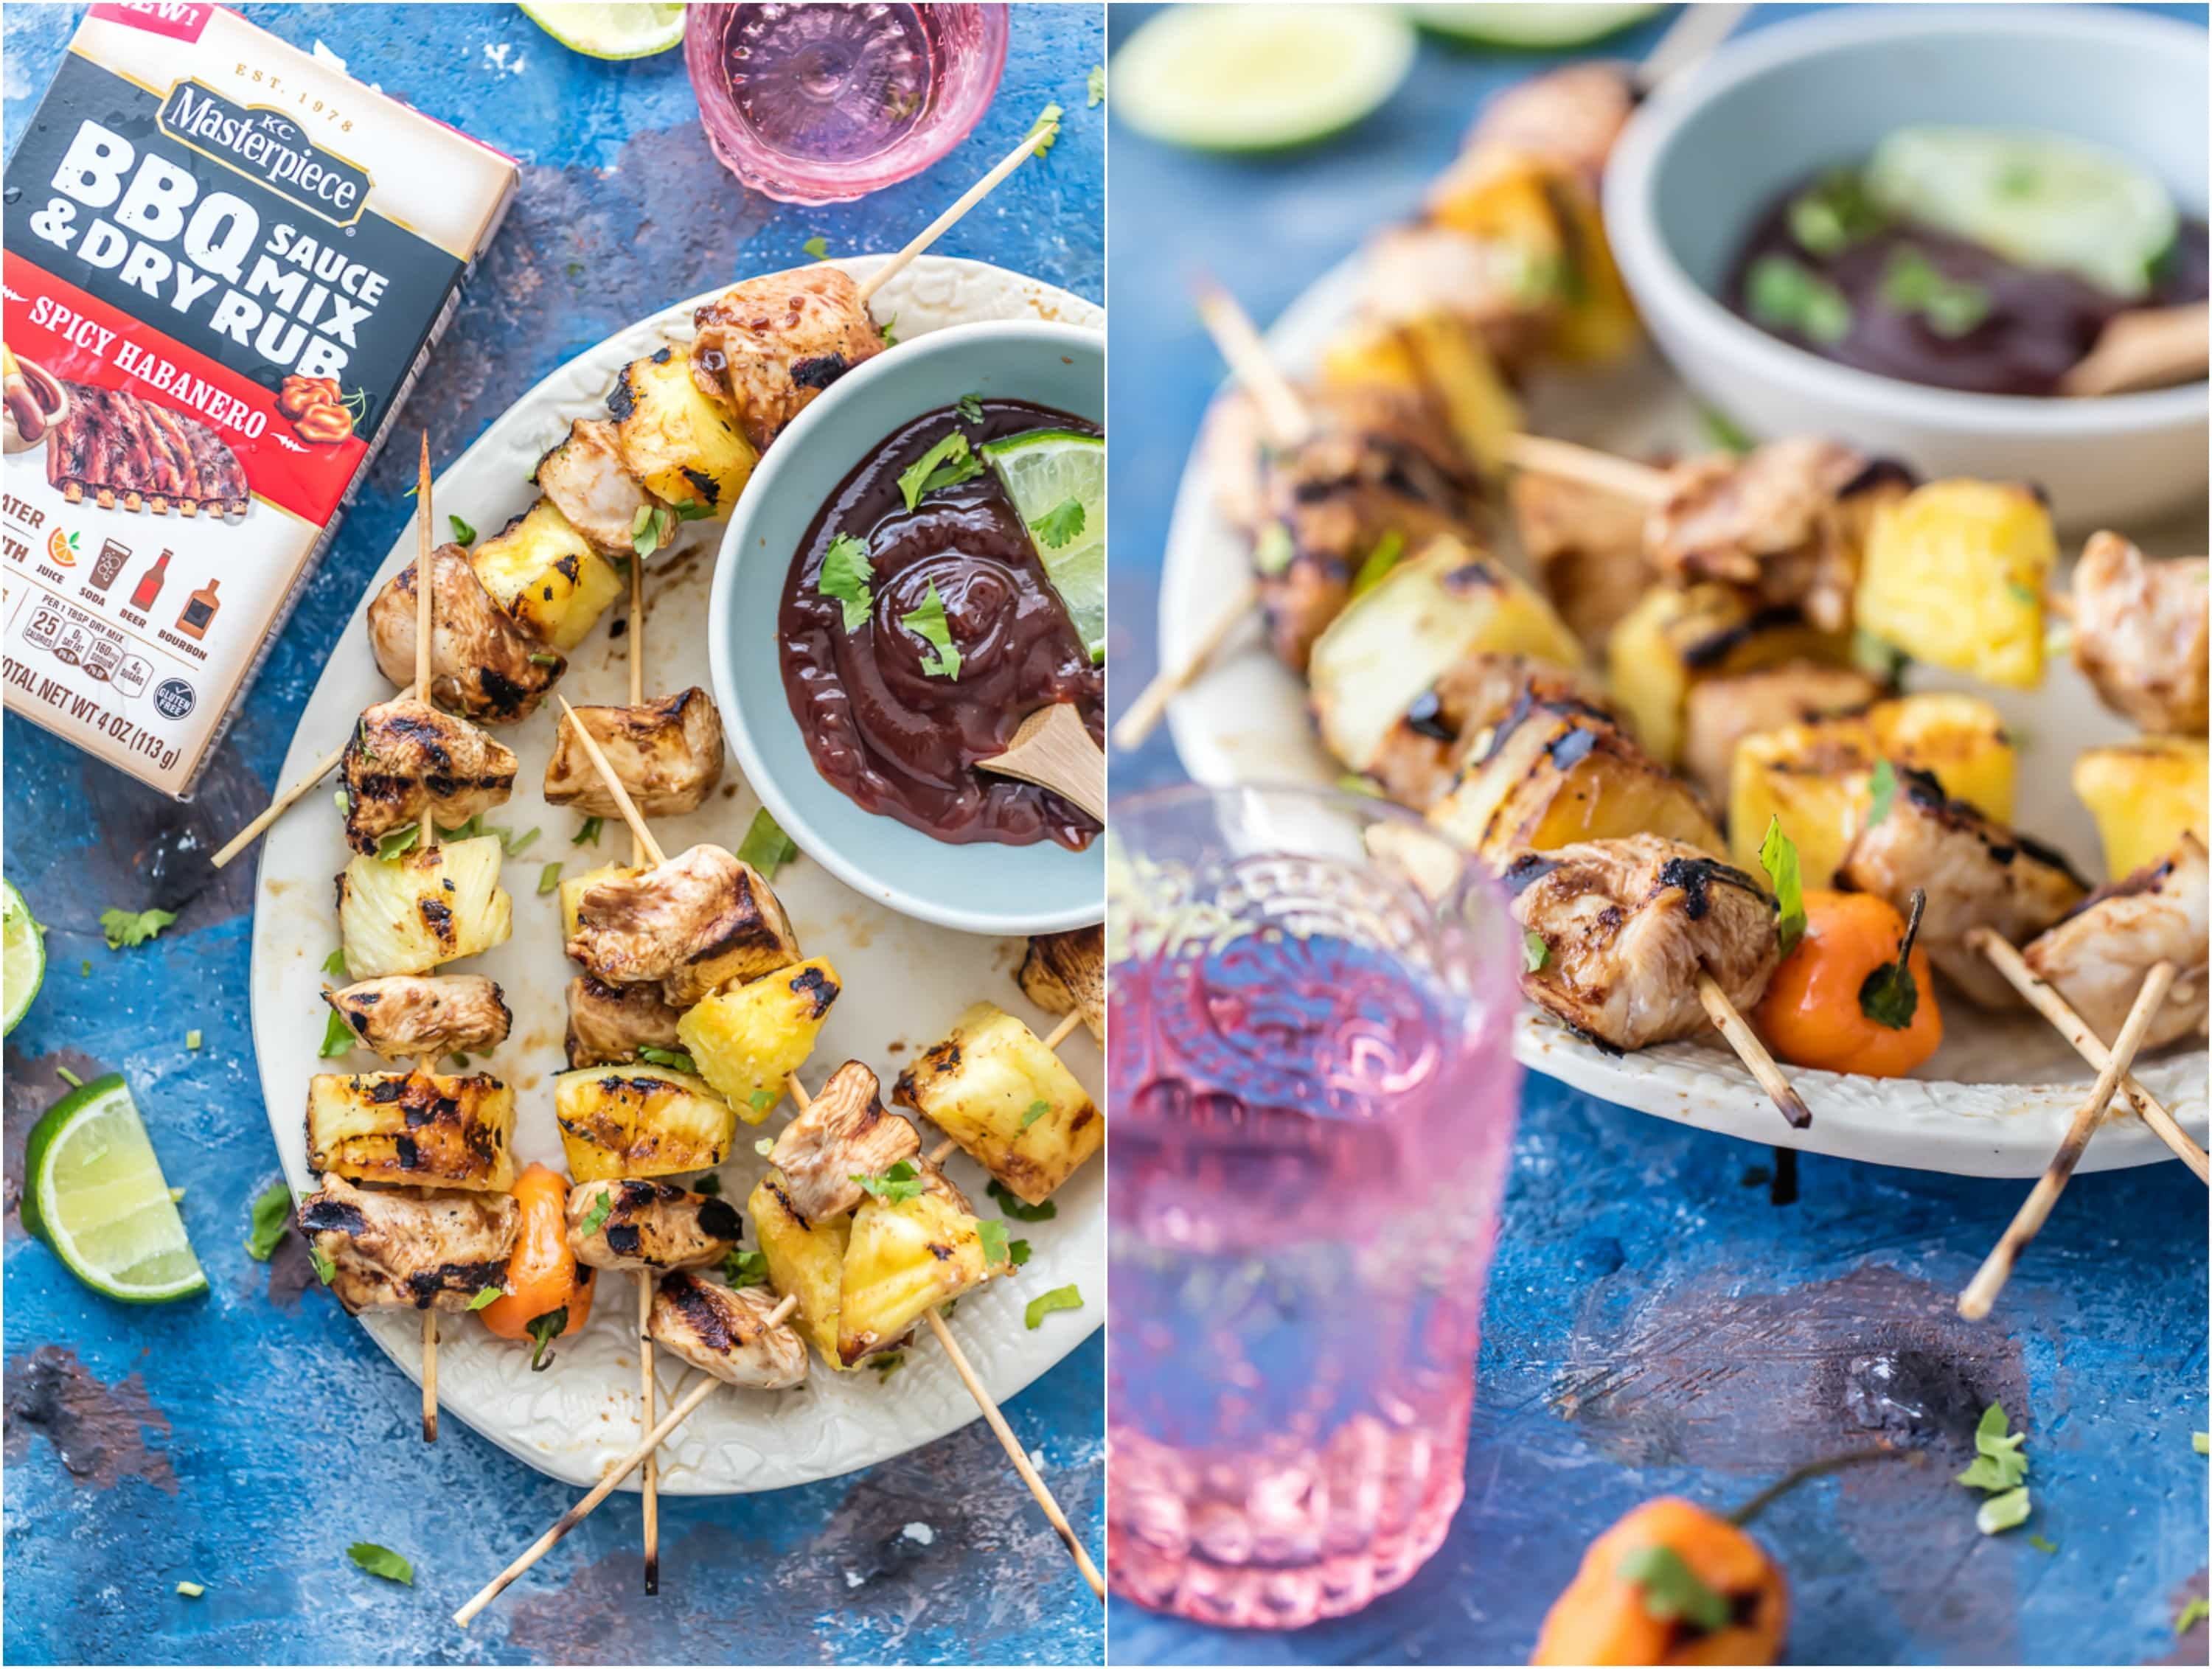 Spicy PINEAPPLE HABANERO BBQ CHICKEN KEBABS are our favorite summer easy grill recipe! So much flavor and mix of sweet and spicy on these skewers! Best BBQ recipe for Summer!